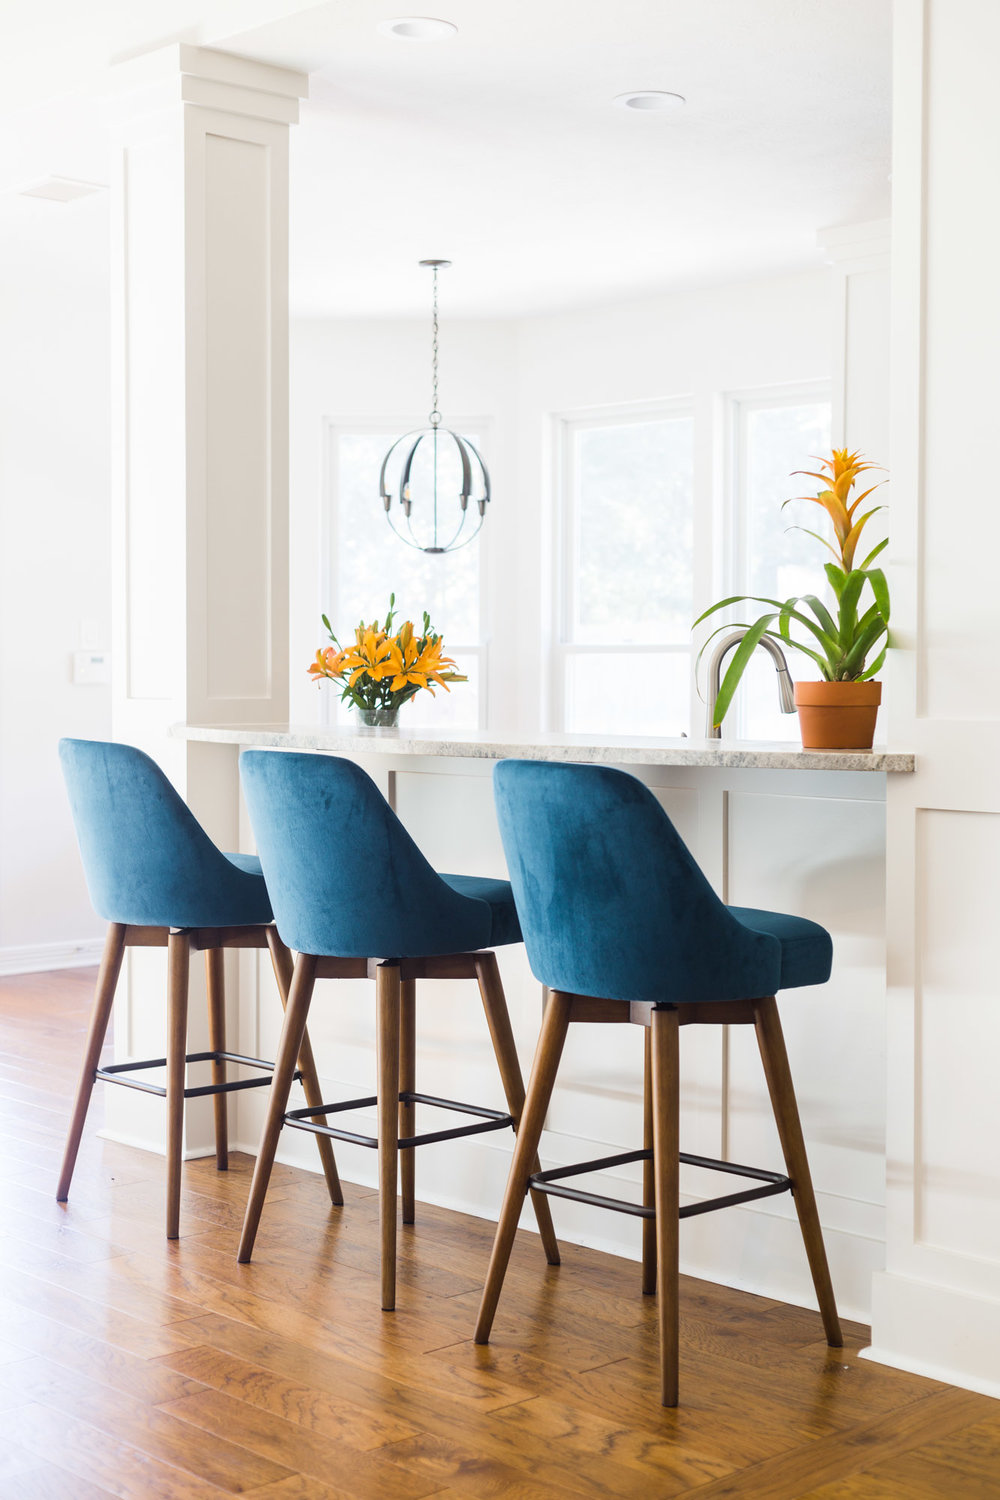 Mid century modern bar stools with white paneling at kitchen bar, kitchen remodel, Designer: Carla Aston